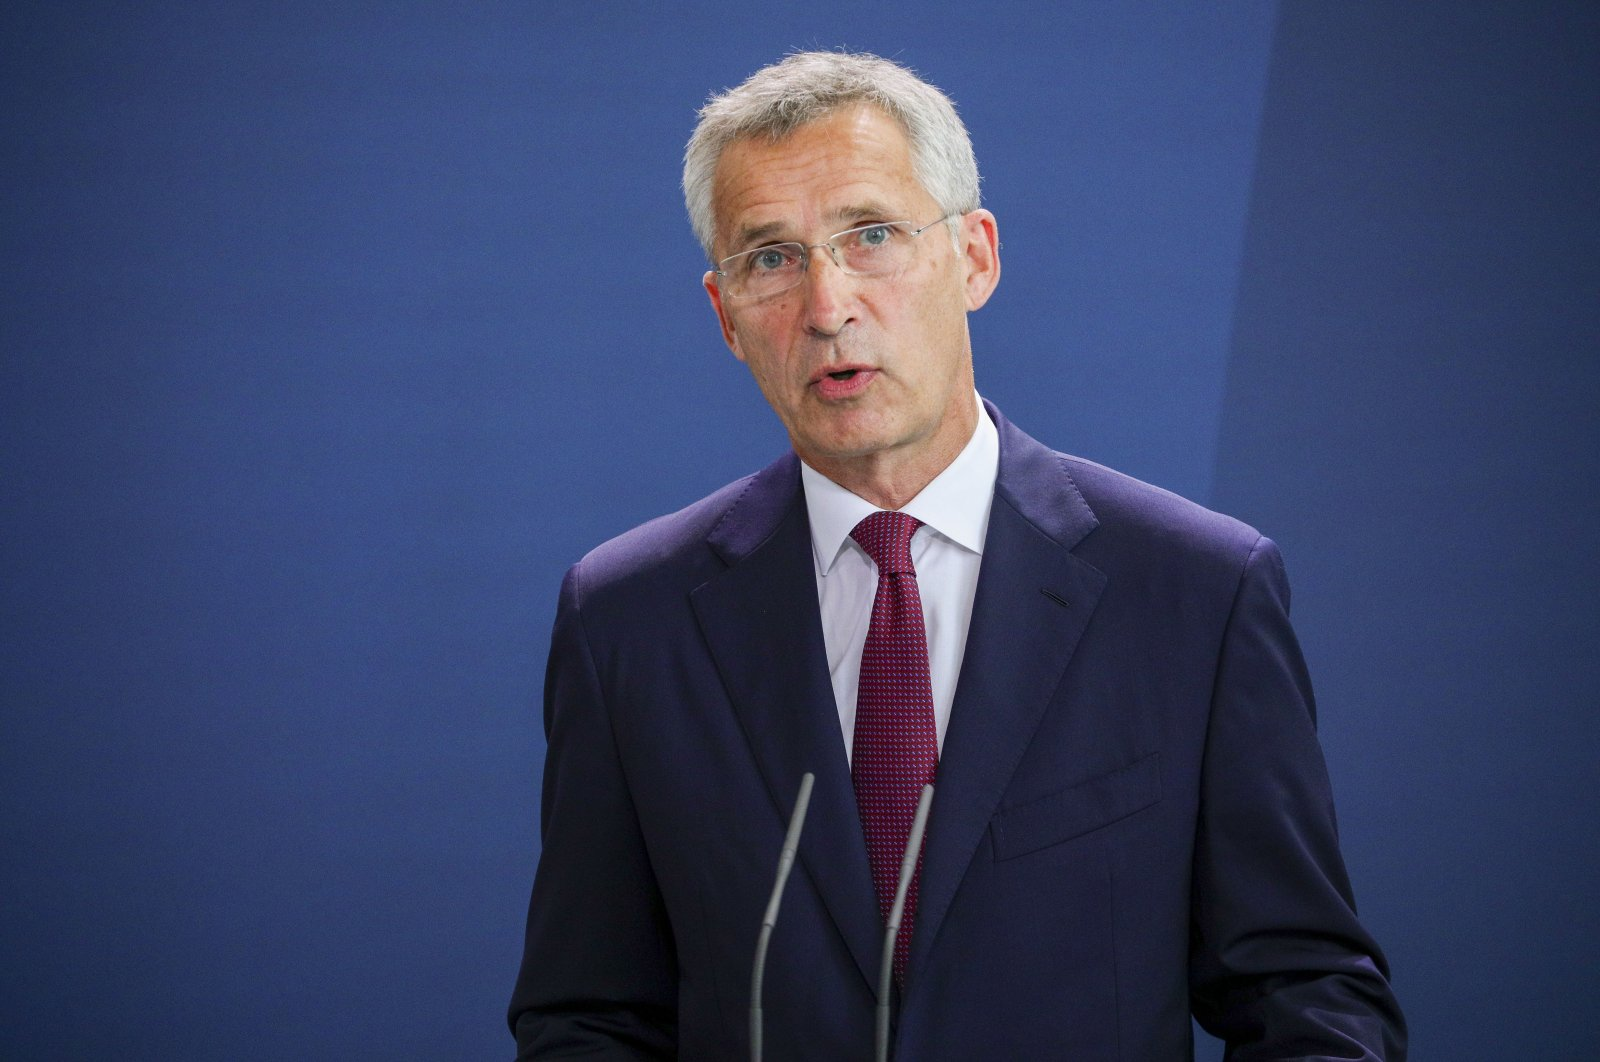 NATO Secretary-General Jens Stoltenberg speaks to the media prior to talks with German Chancellor Angela Merkel, at the Chancellery in Berlin, Germany, Aug. 27, 2020. (EPA File Photo)